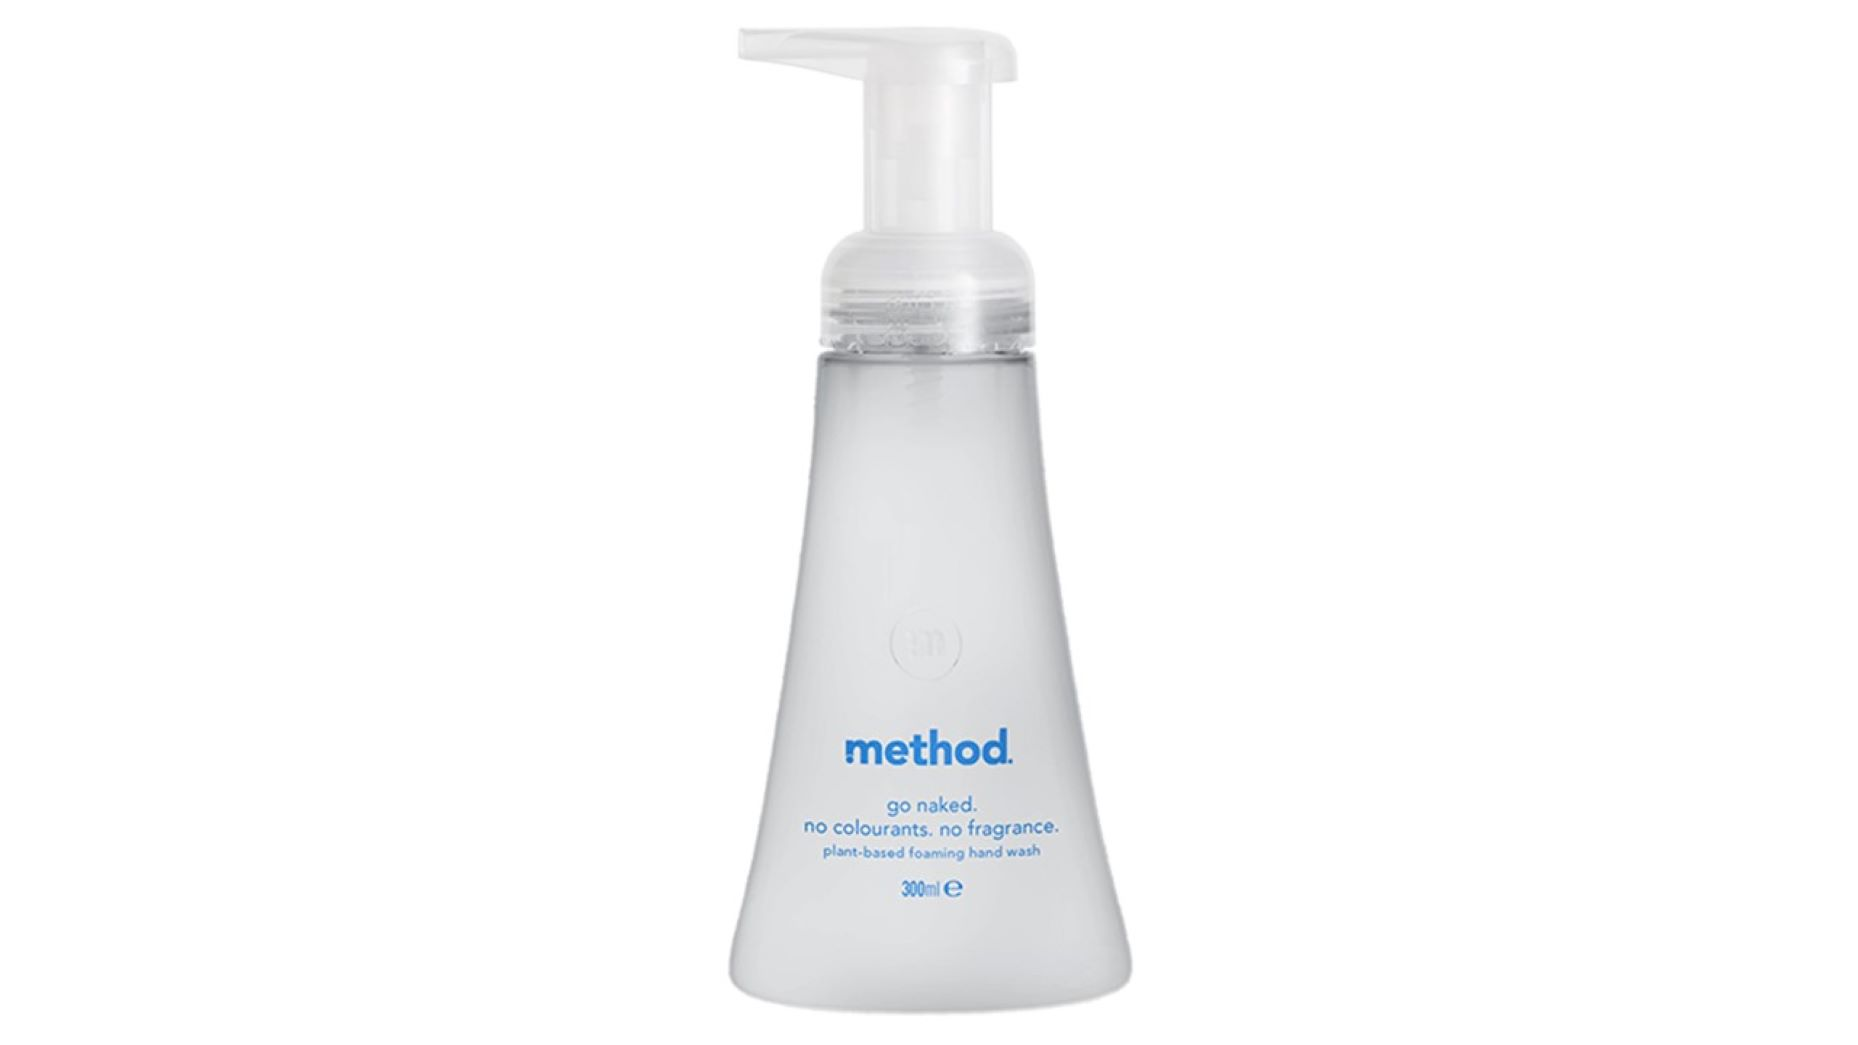 method Vaahtoava nestesaippua Naked 300ml